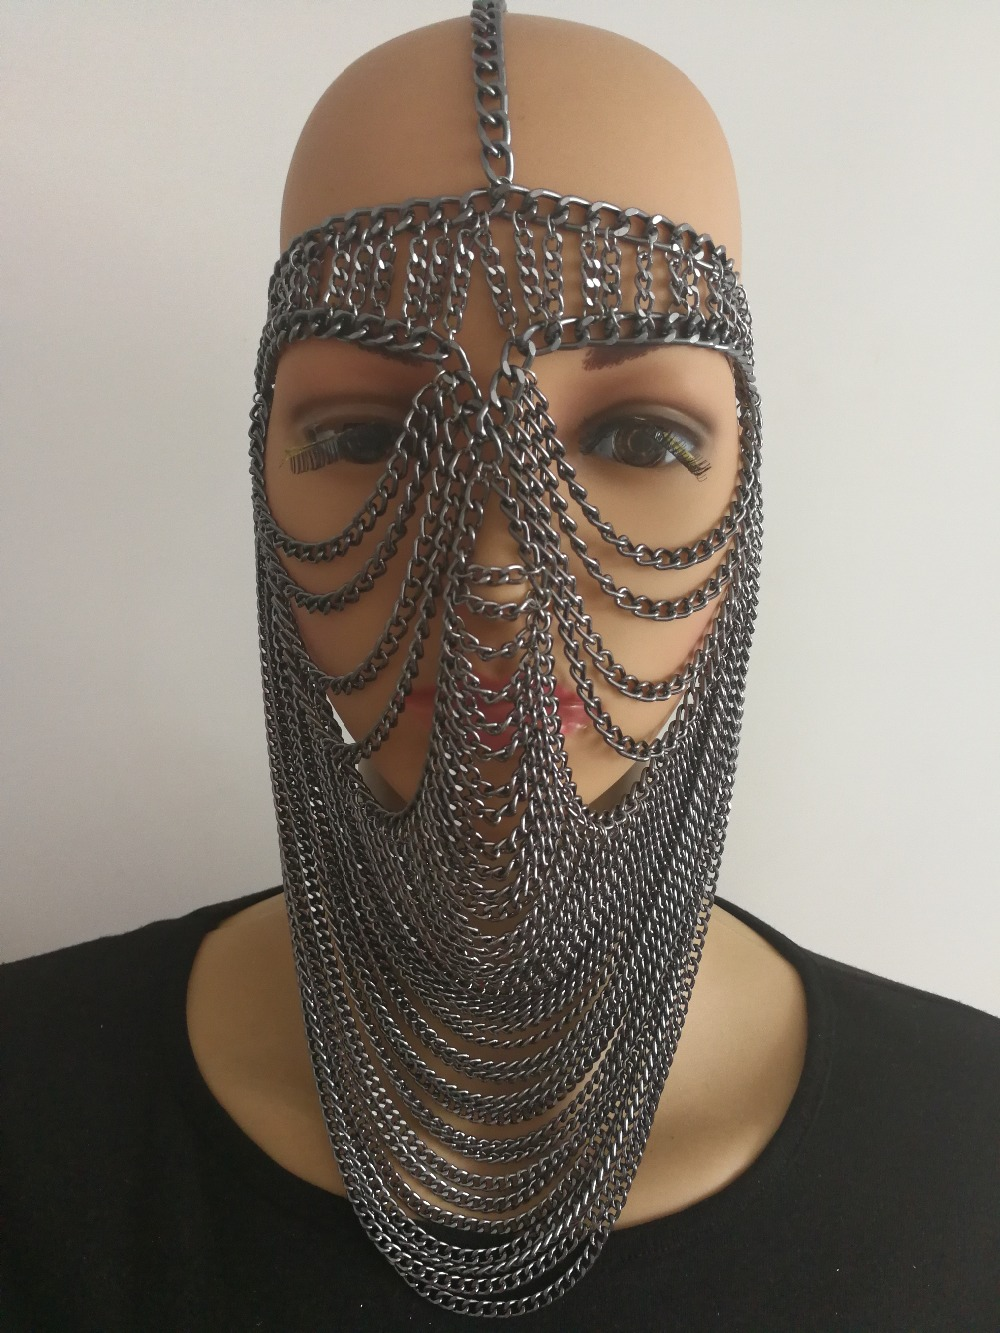 New Fashion Style WRB948 Women Harness Gray Chains Layers Mask Head Face Chains Jewelry Cosplay Face Chains Jewelry 3 Colors